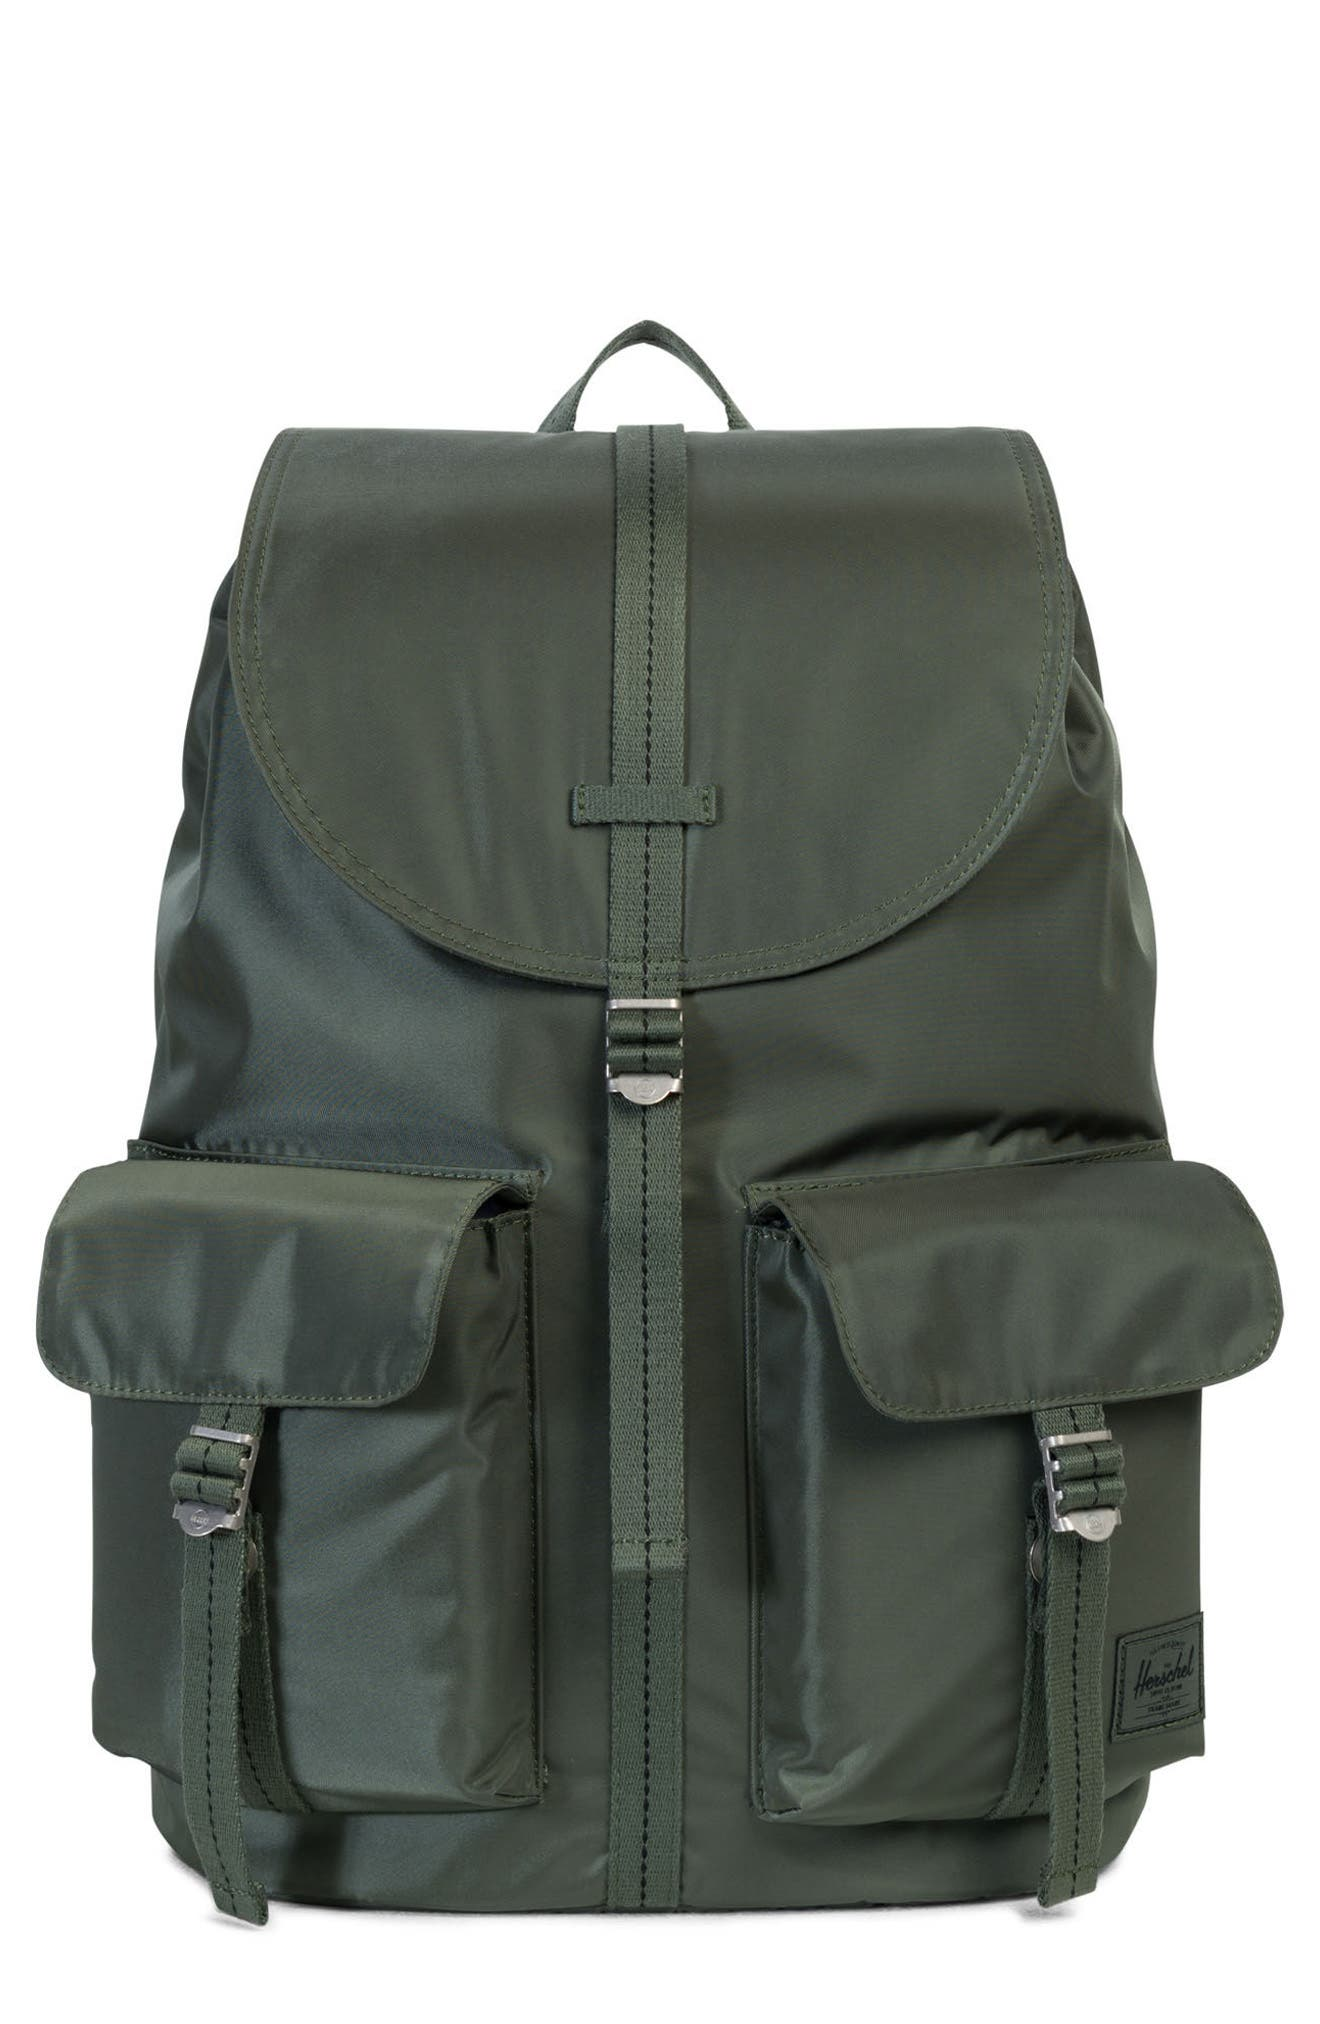 Herschel Supply Co. Dawson Surplus Collection Backpack